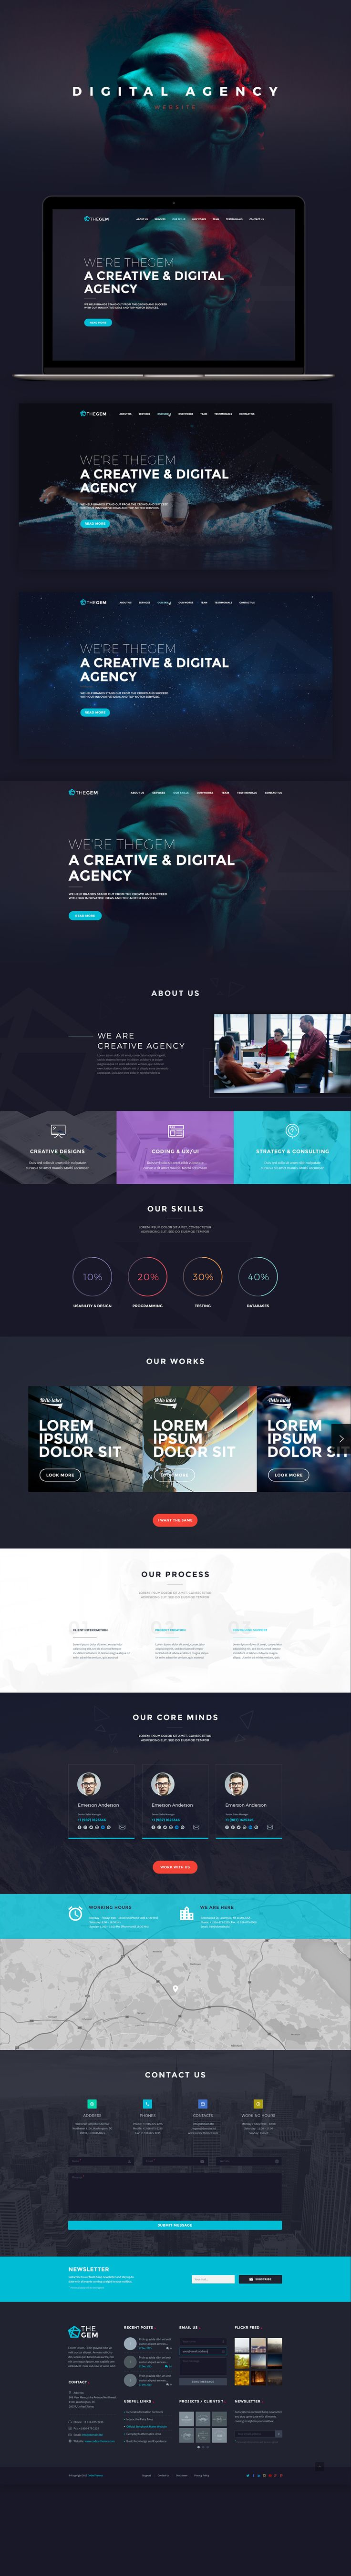 Digital agency website template.